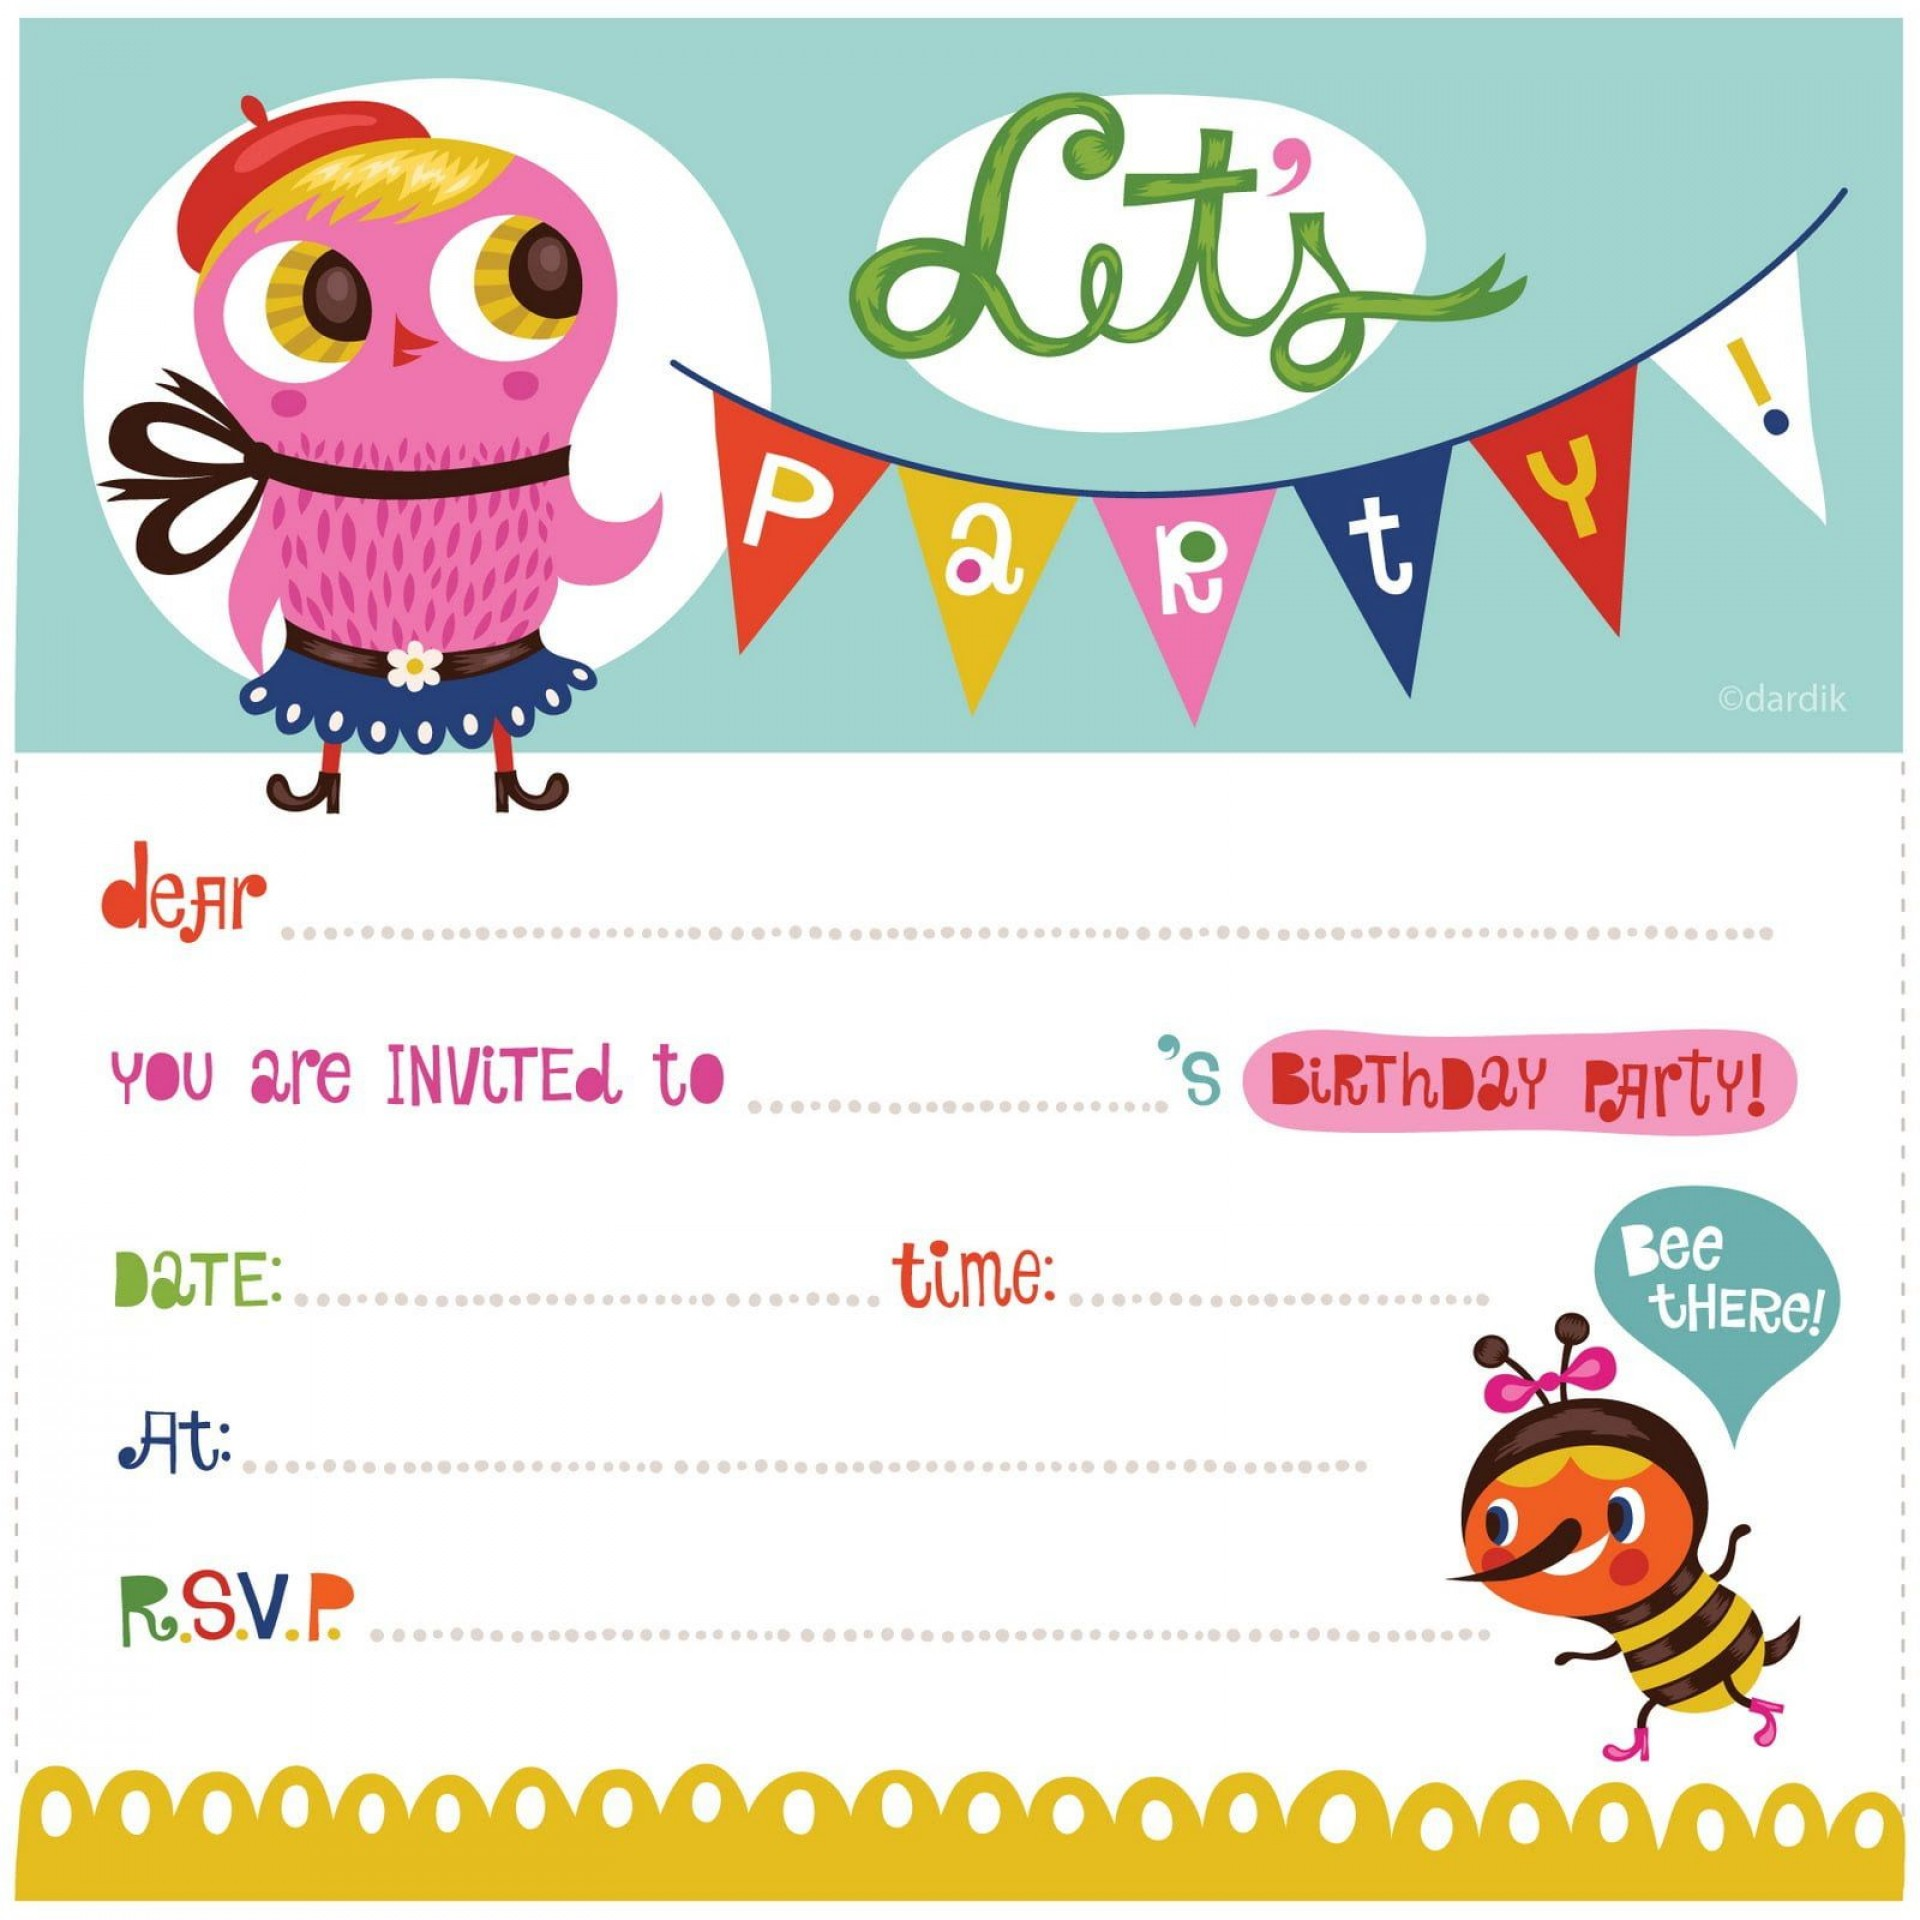 004 Best Free Birthday Party Invitation Template For Word Image 1920